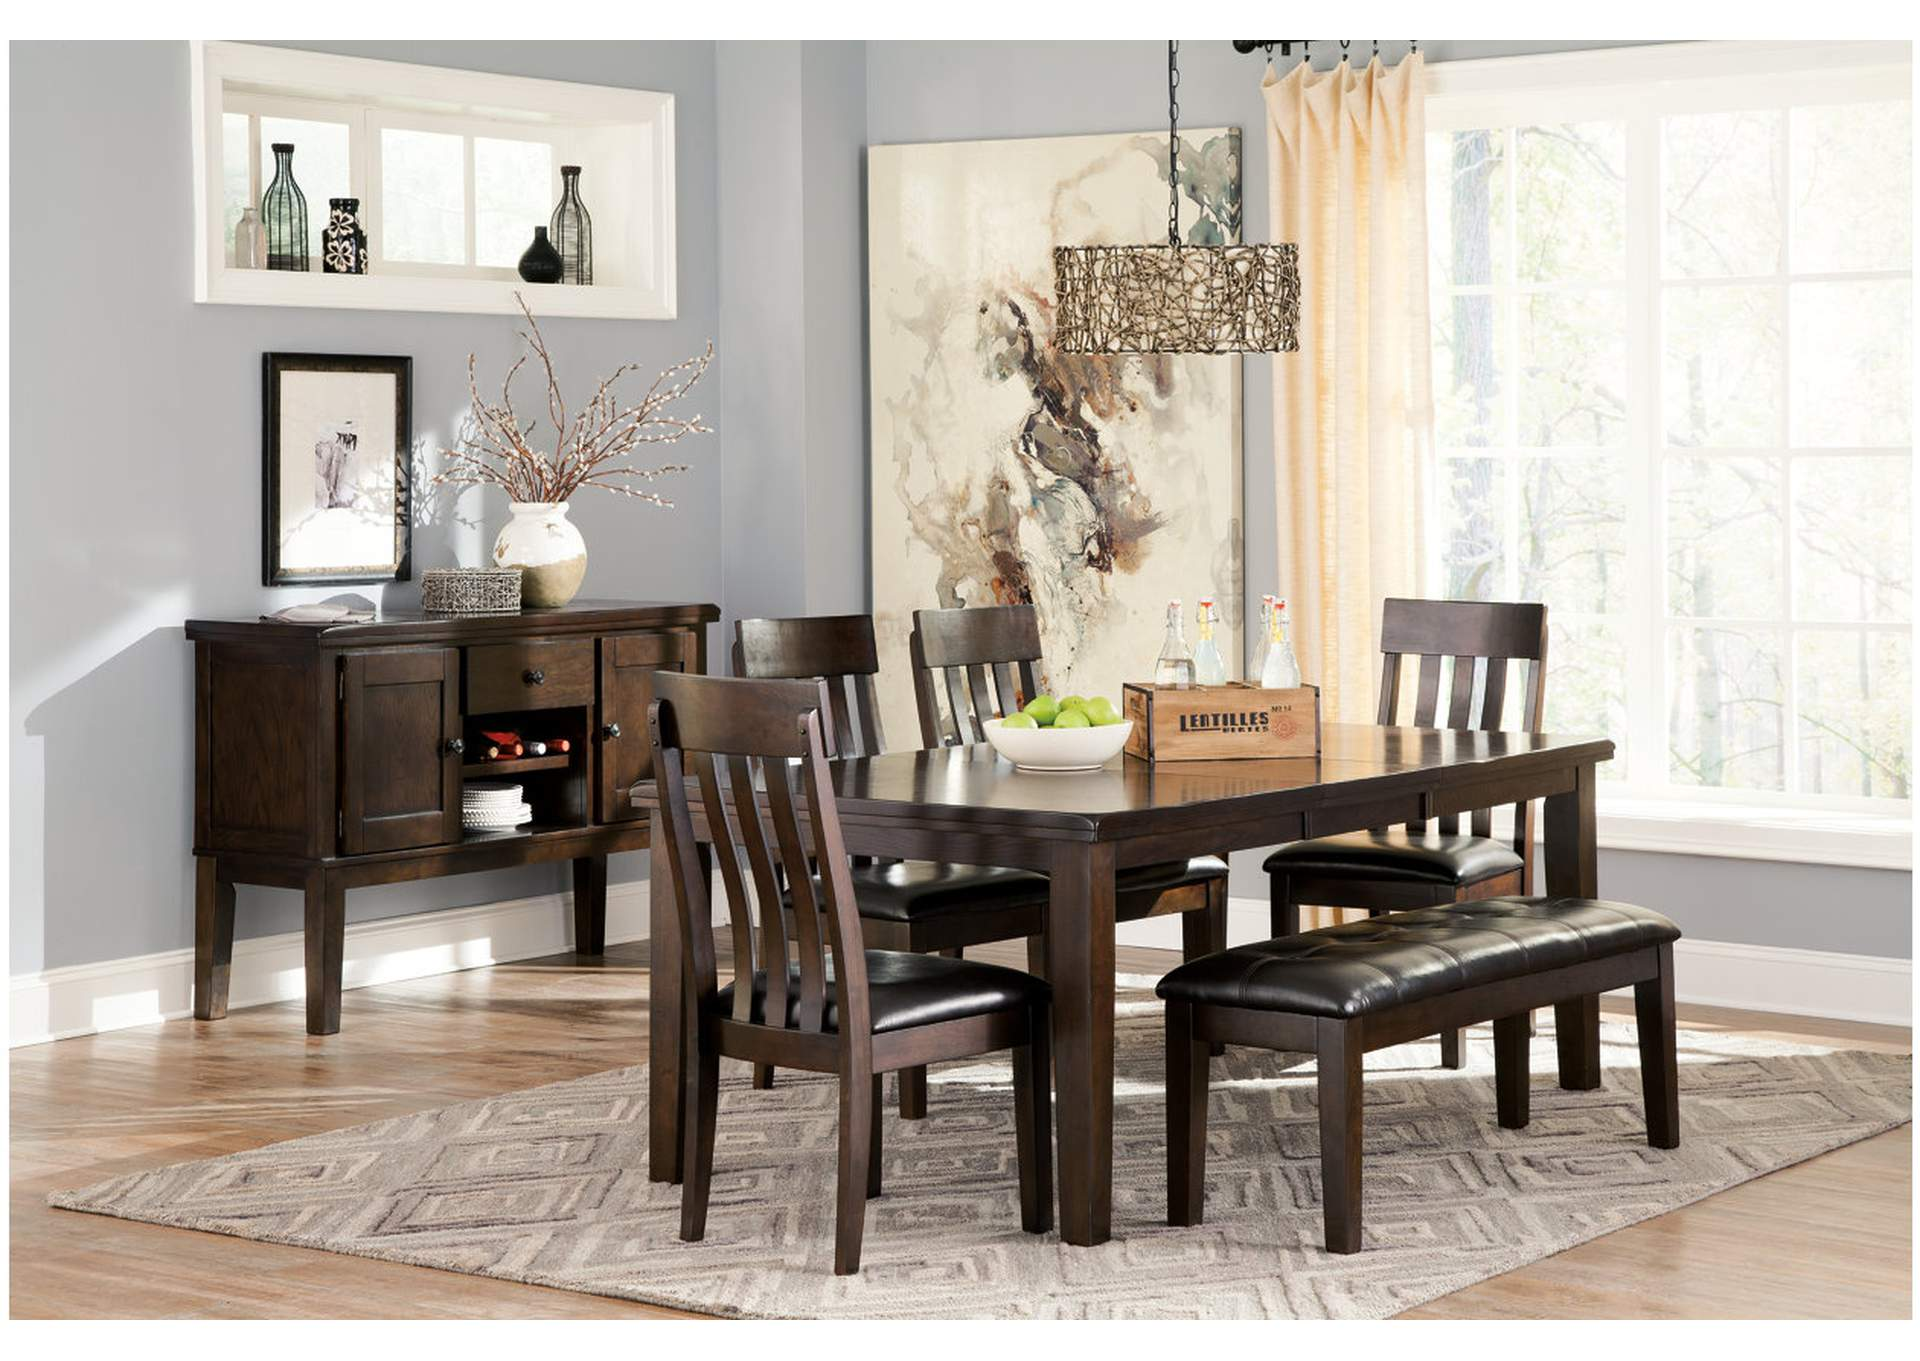 Haddigan Dark Brown Large Upholstered Dining Room Bench,Signature Design By Ashley